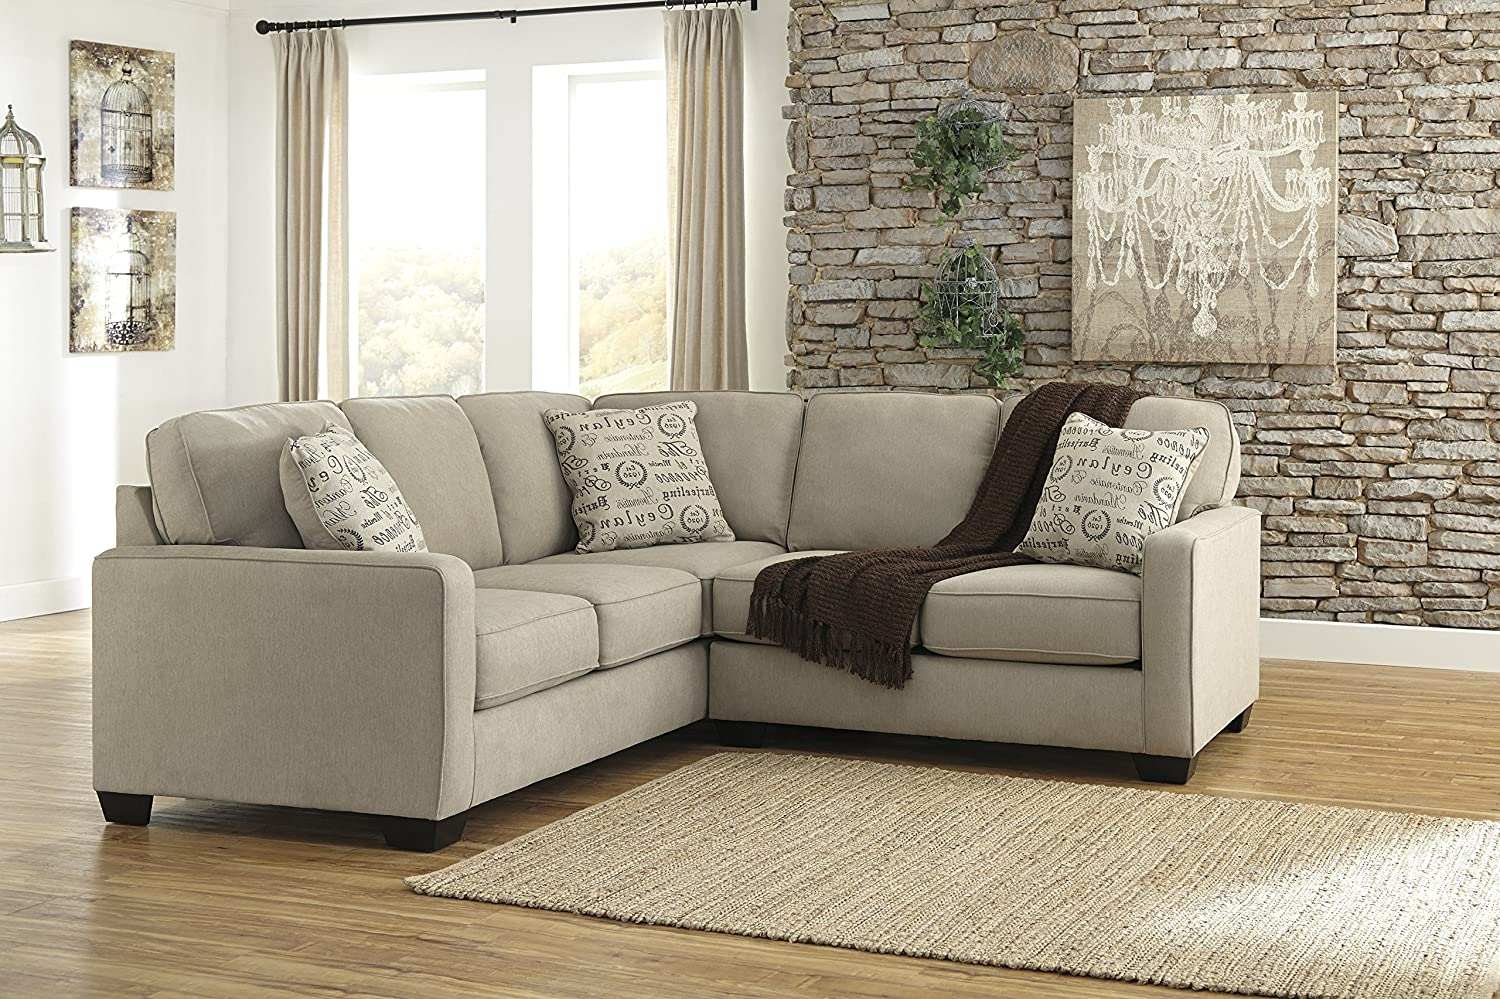 Amazoncom Alenya Vintage Casual Tan Fabric Right Chaise Sectional